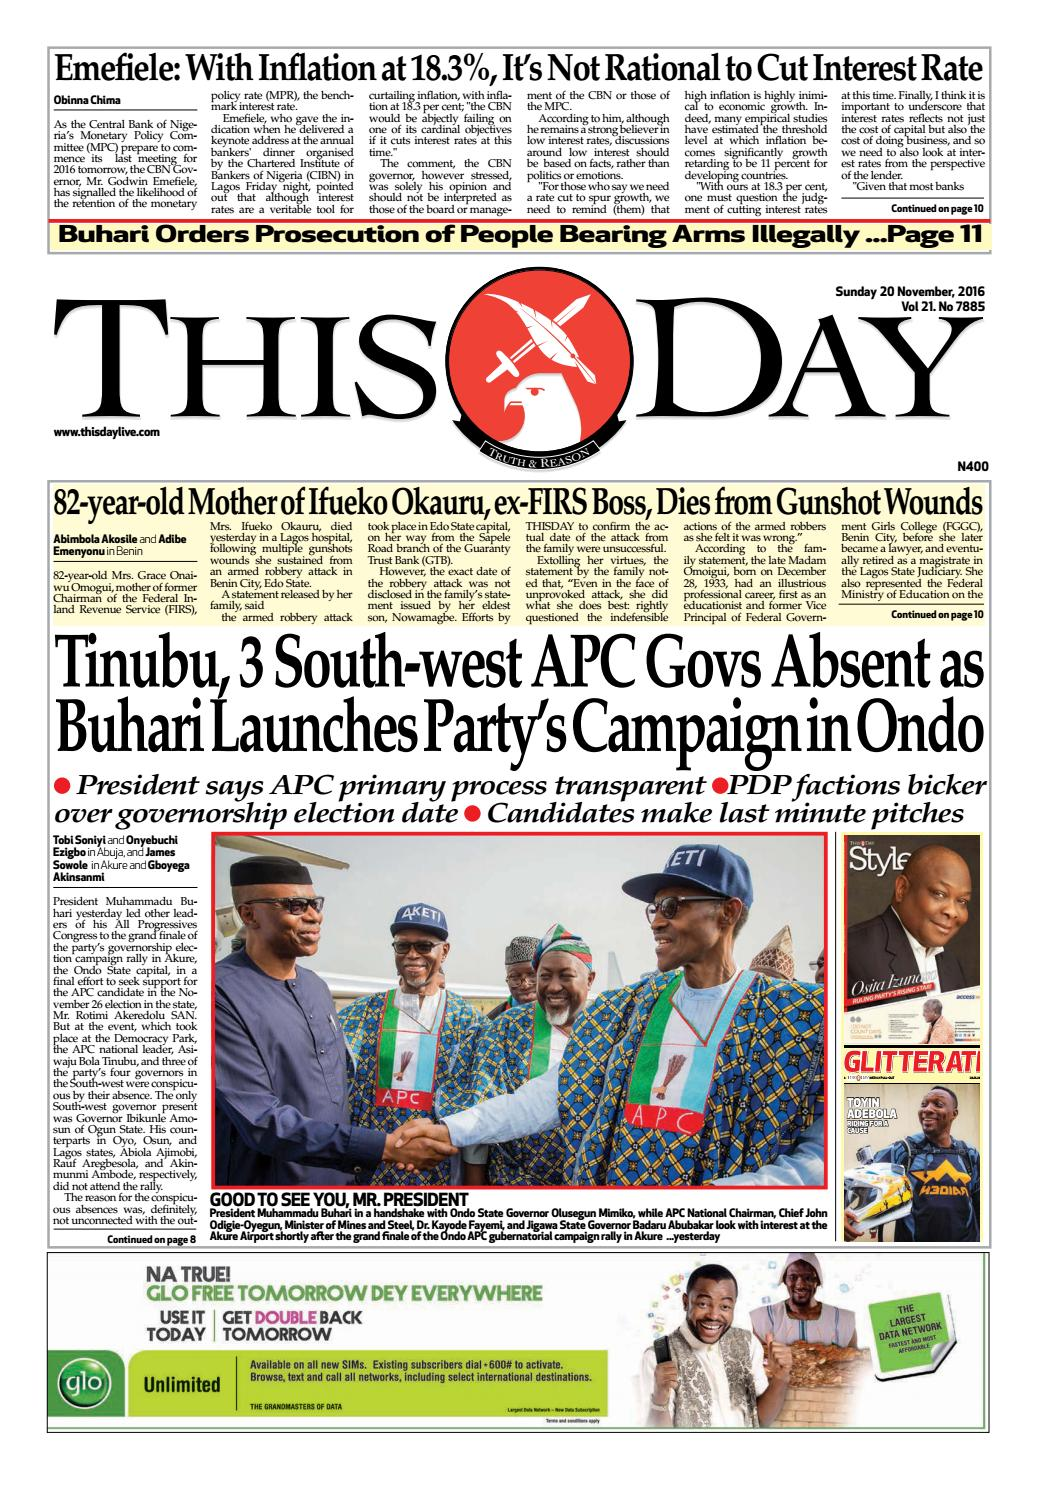 Sunday 20th November 2016 r by THISDAY Newspapers Ltd - issuu